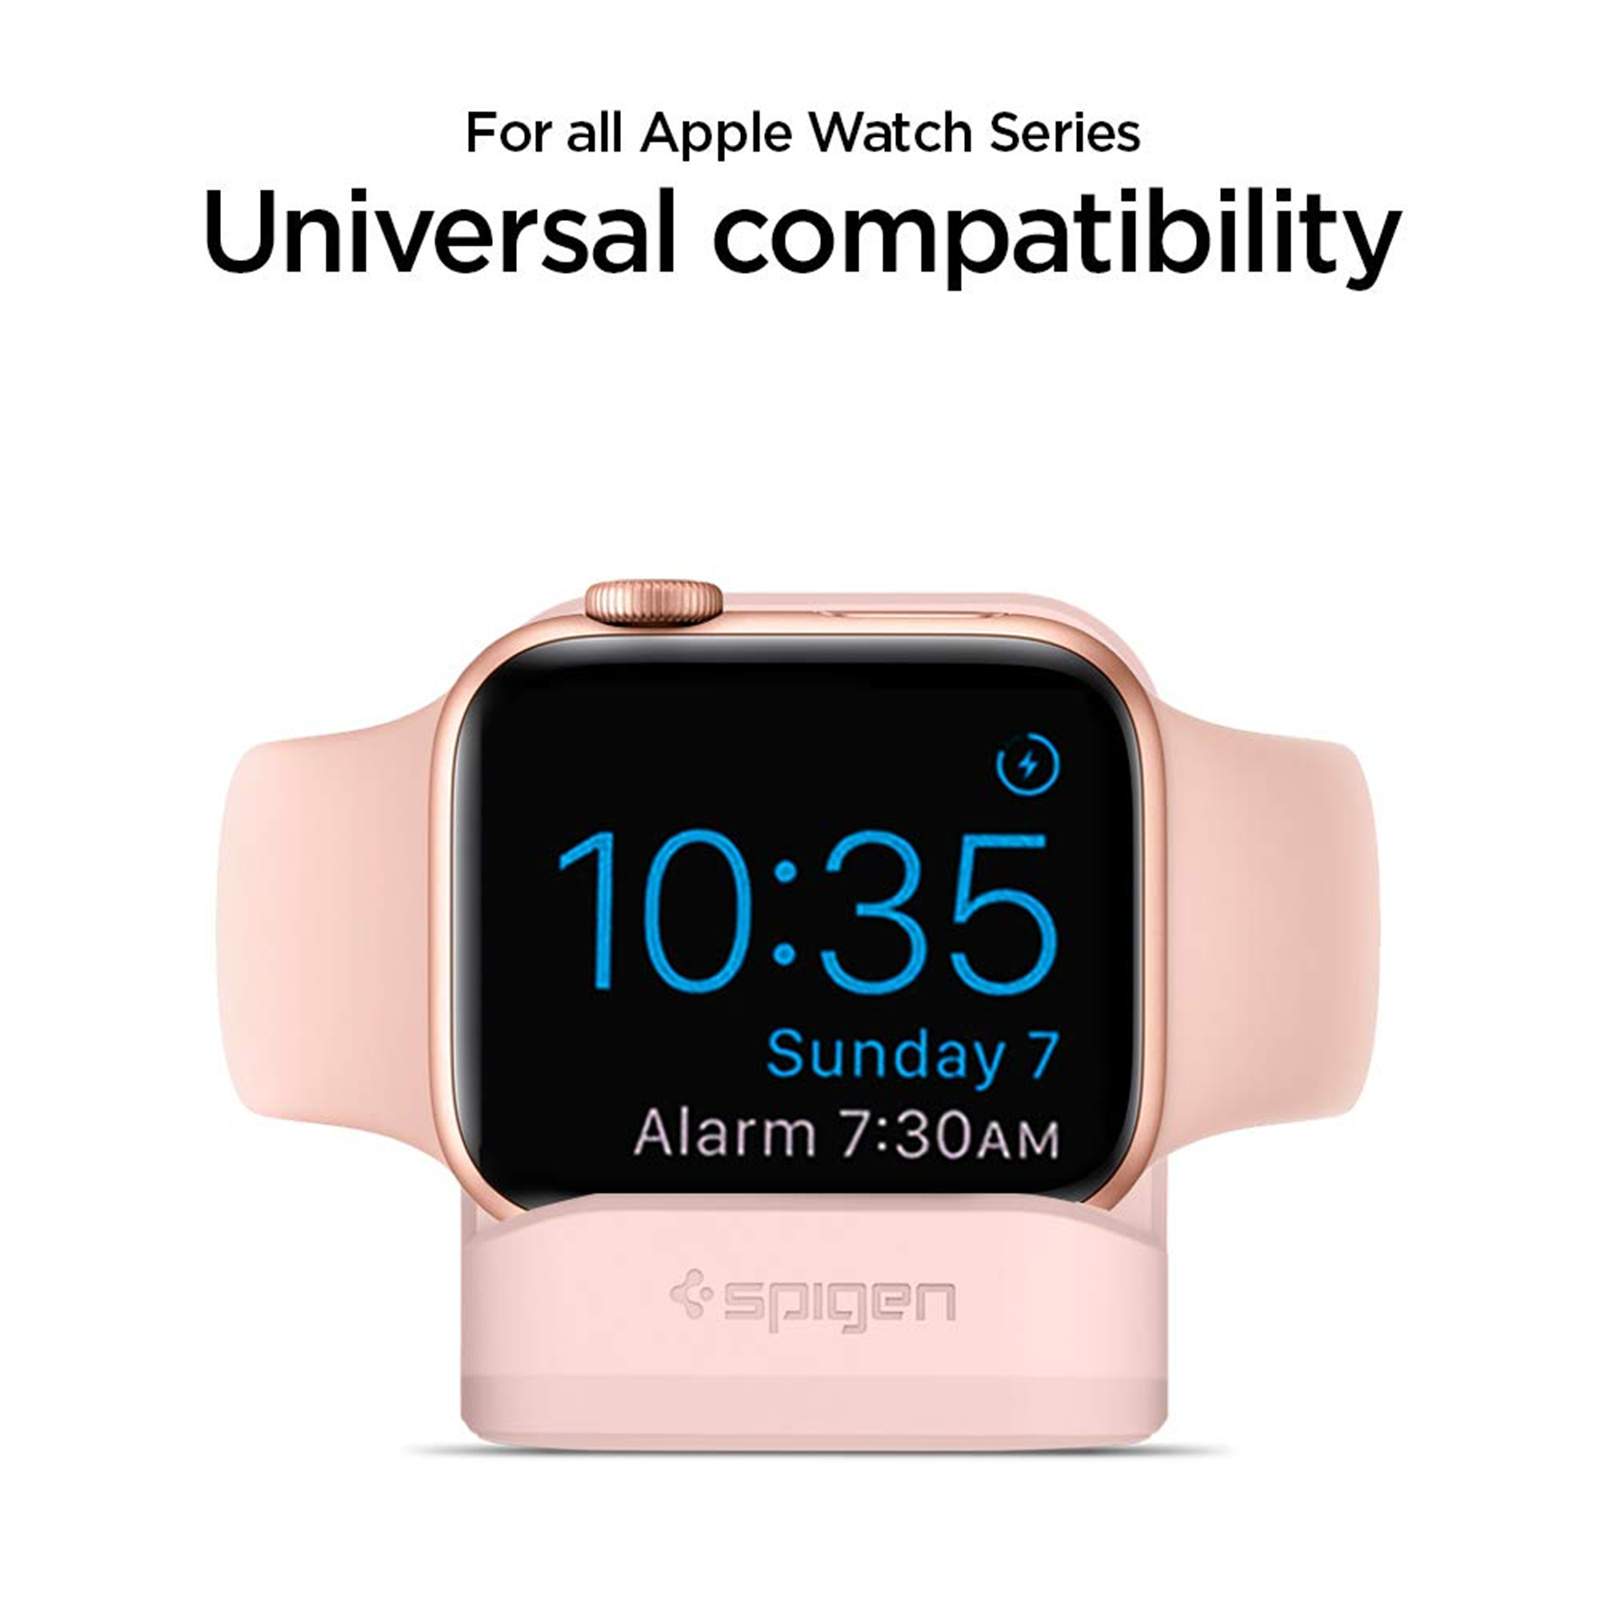 buy online 6a809 cca4c Buy the Spigen Apple Watch Night Stand Pink, Non-Slip Base, Secure ...